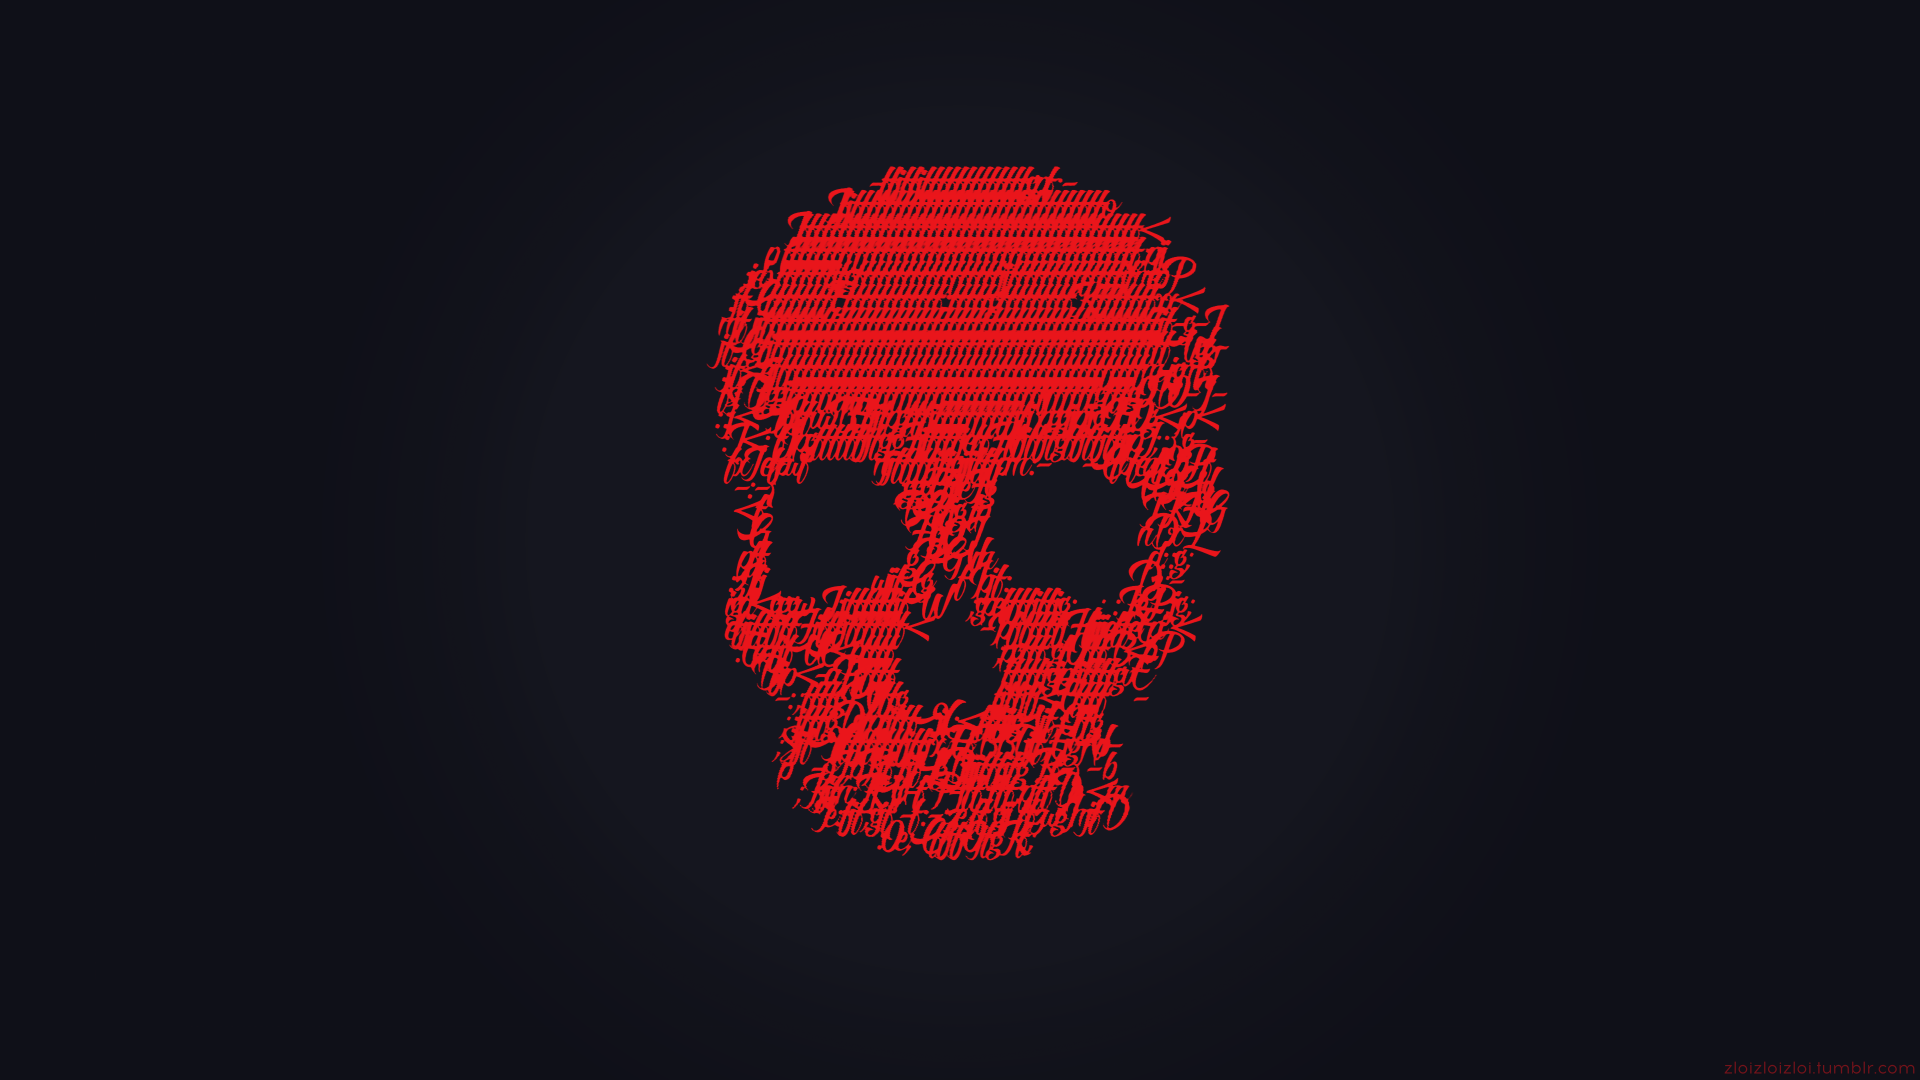 Download Wallpapers Of Skull Glitch Art Dark Red 4k Creative Graphics 13369 Available In Hd 4k Resolution Skull Wallpaper Glitch Art Creative Graphics